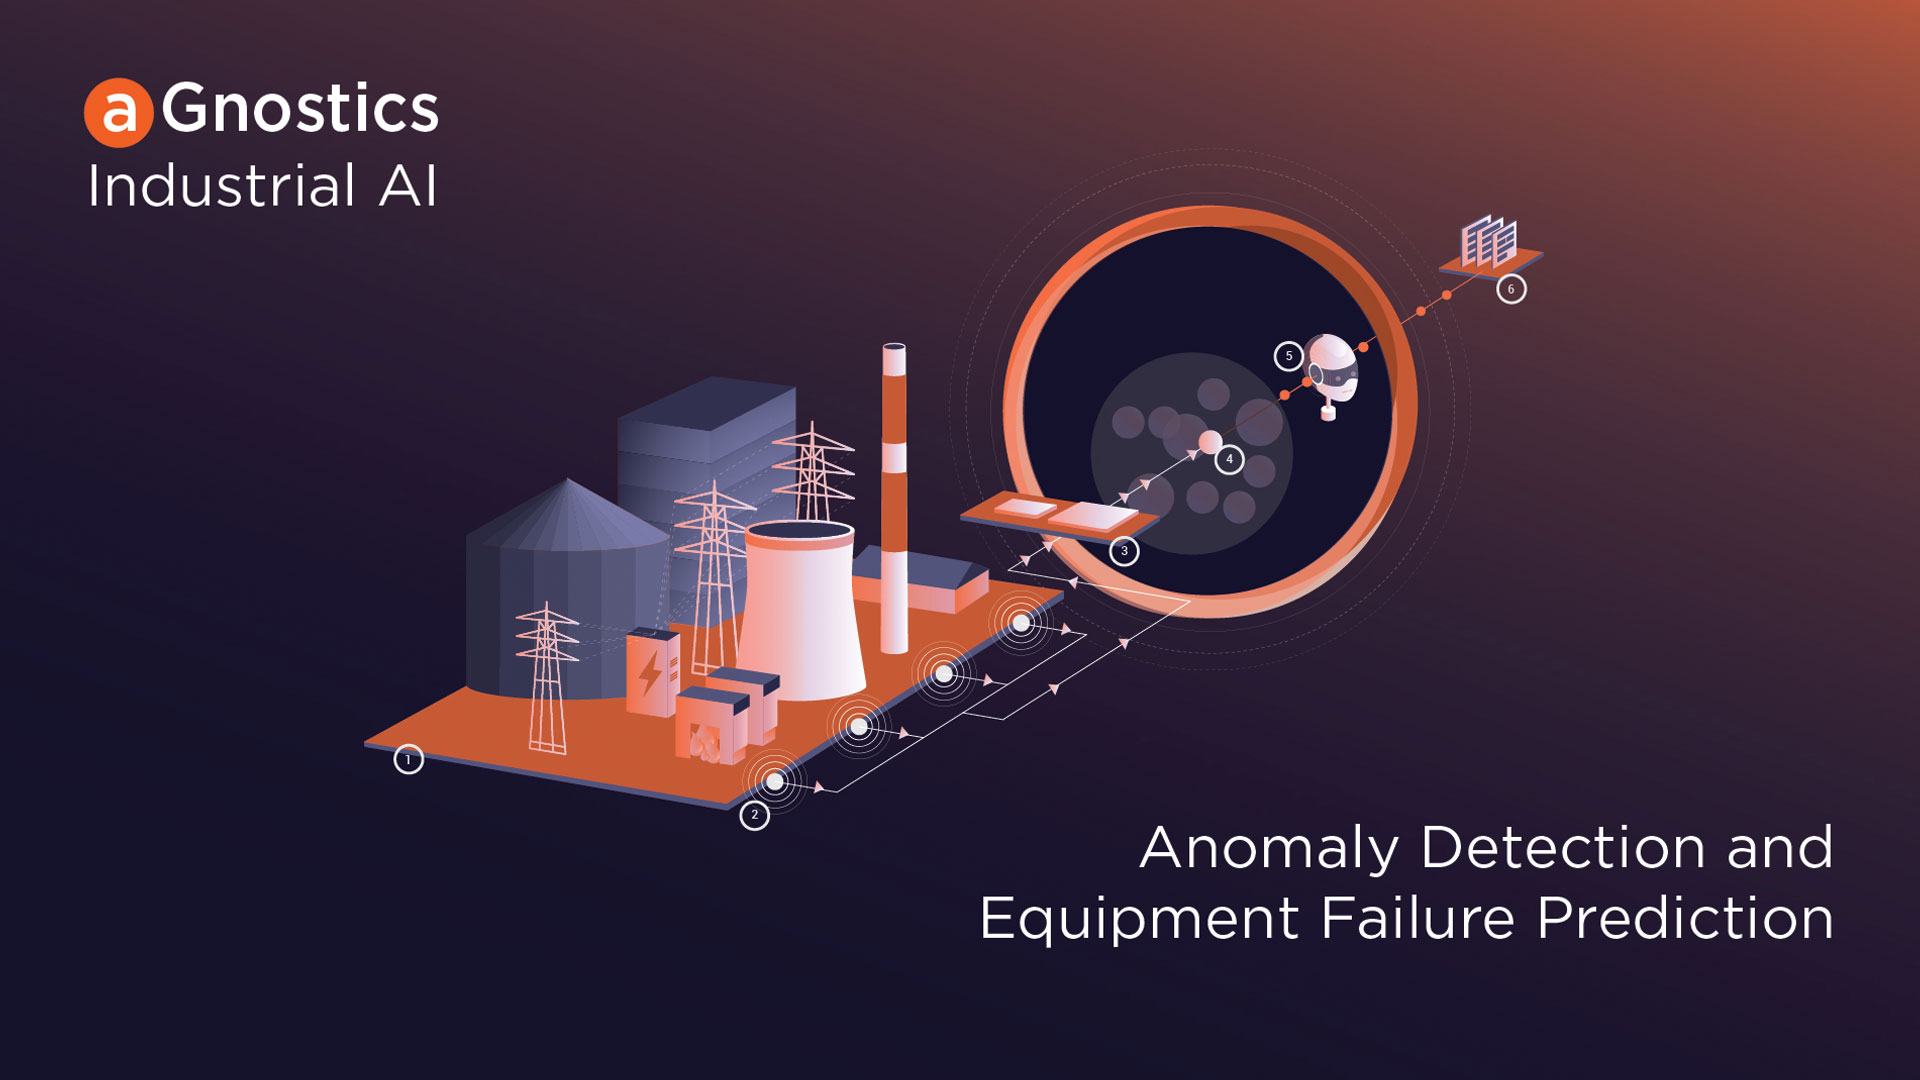 Anomaly Detection and Equipment Failure Prediction General